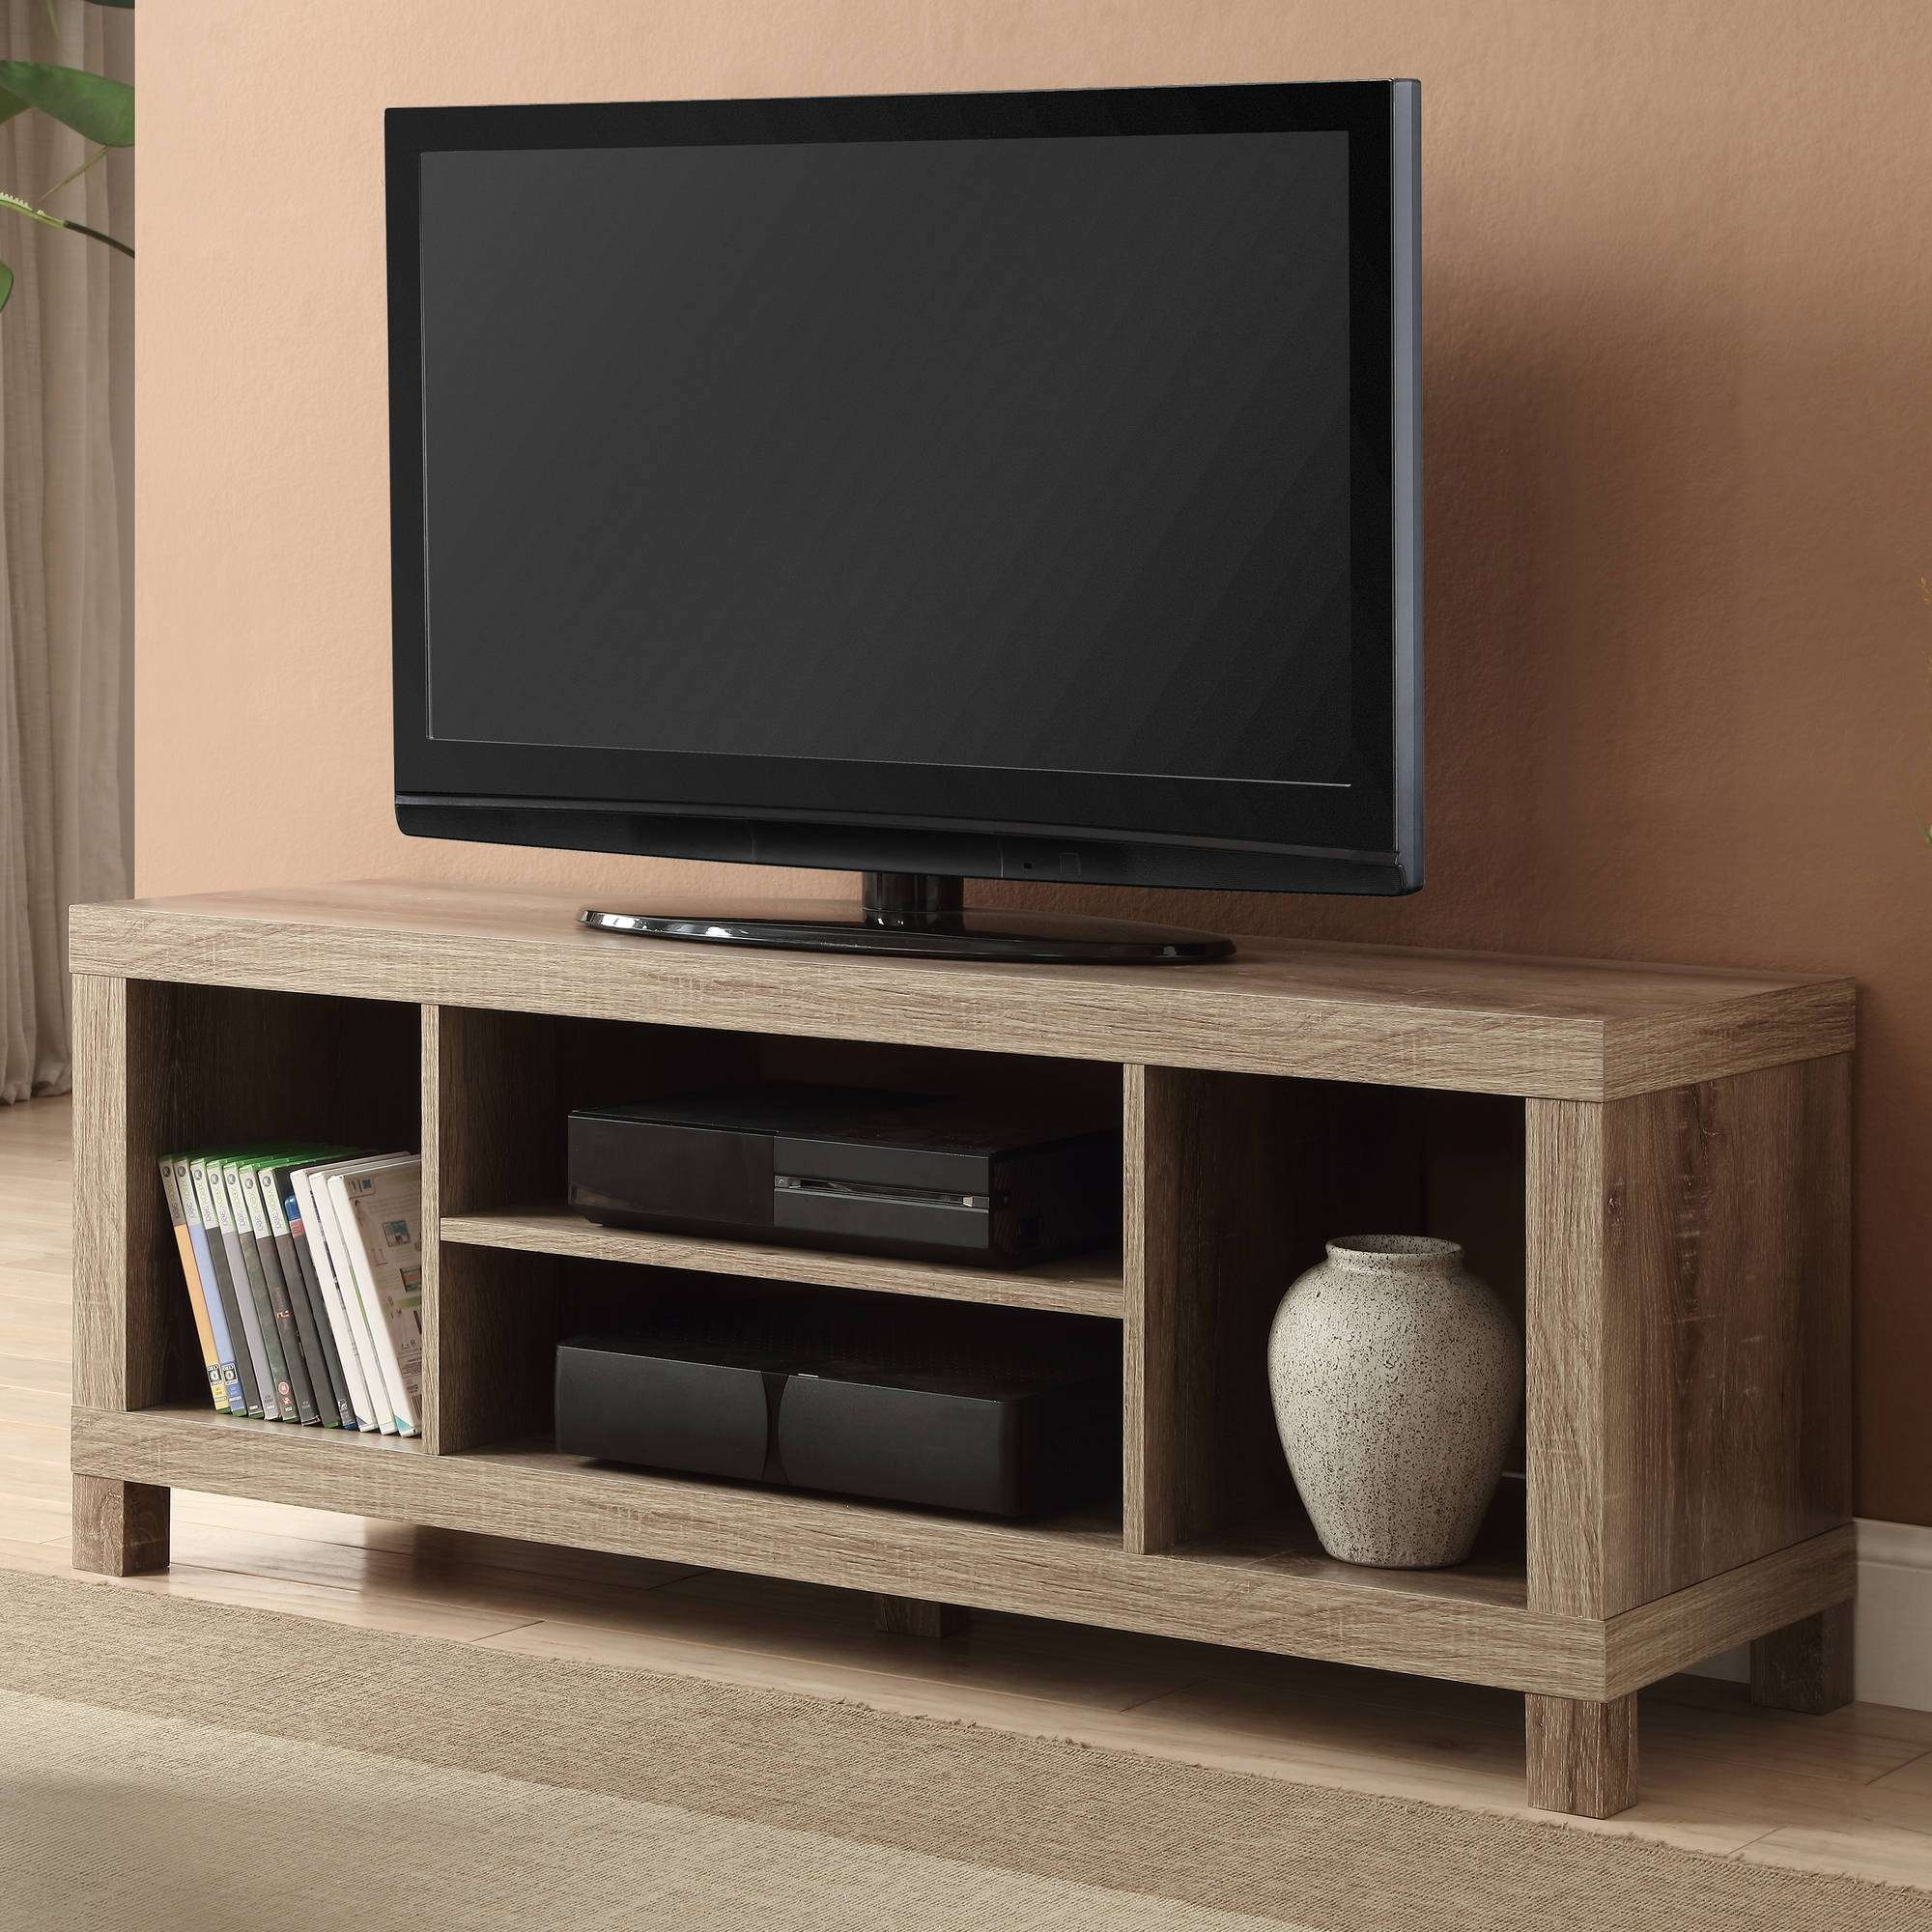 Oak Tv Stands For Flat Screen With Regard To Oak Tv Stands For Flat Screen (View 10 of 15)